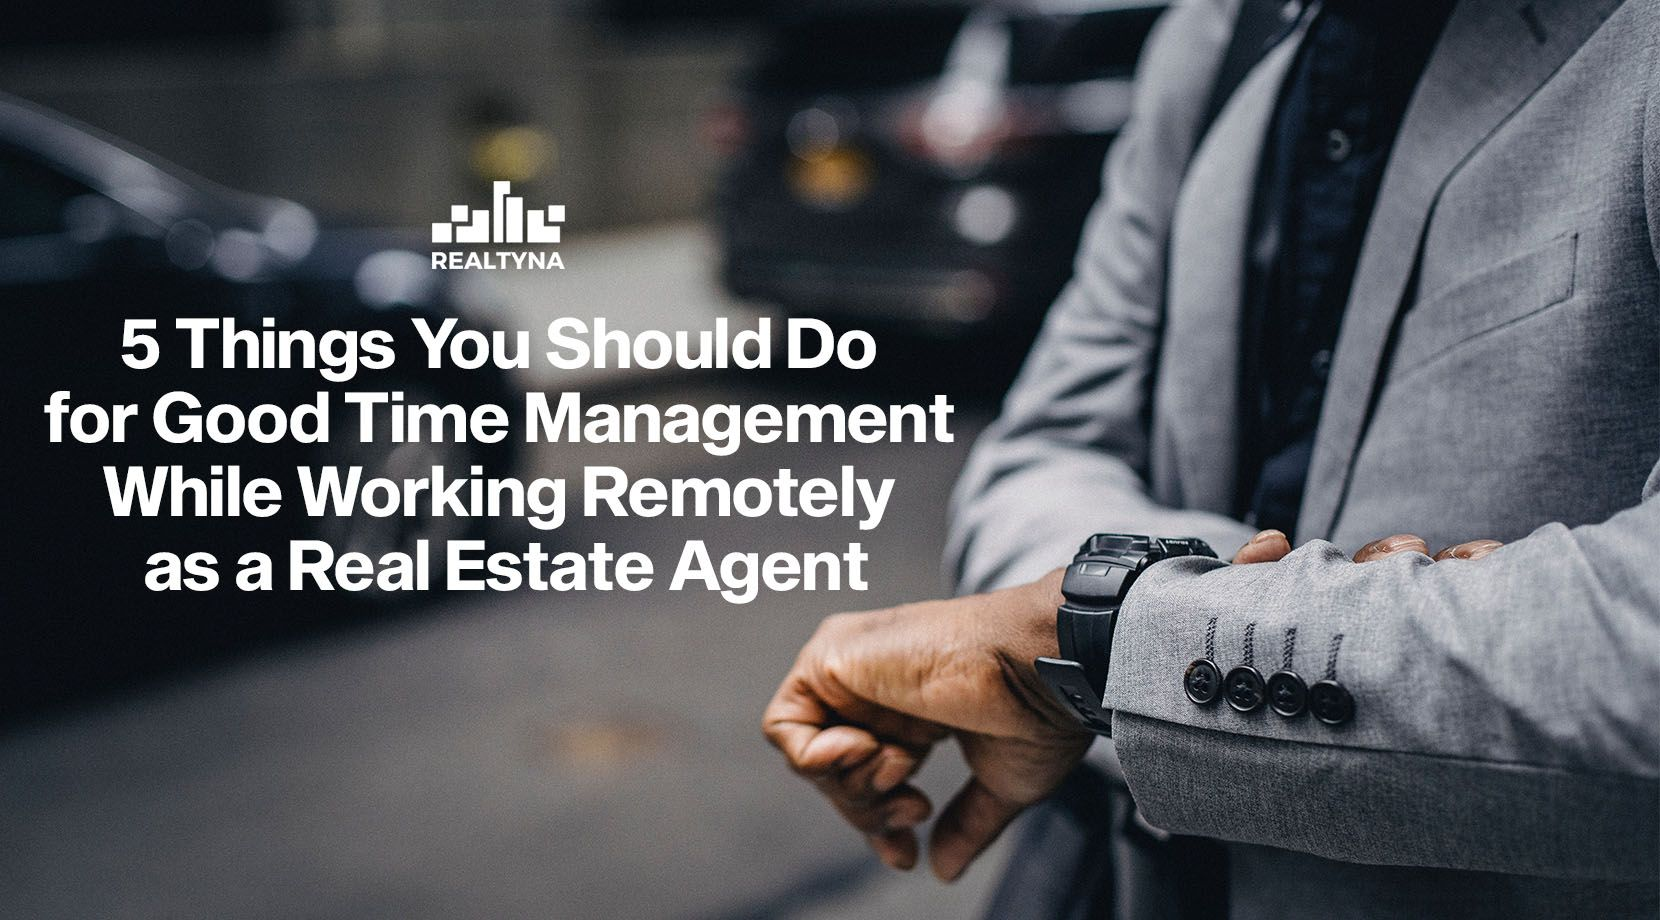 5 Things You Should Do for Good Time Management While Working Remotely as a Real Estate Agent